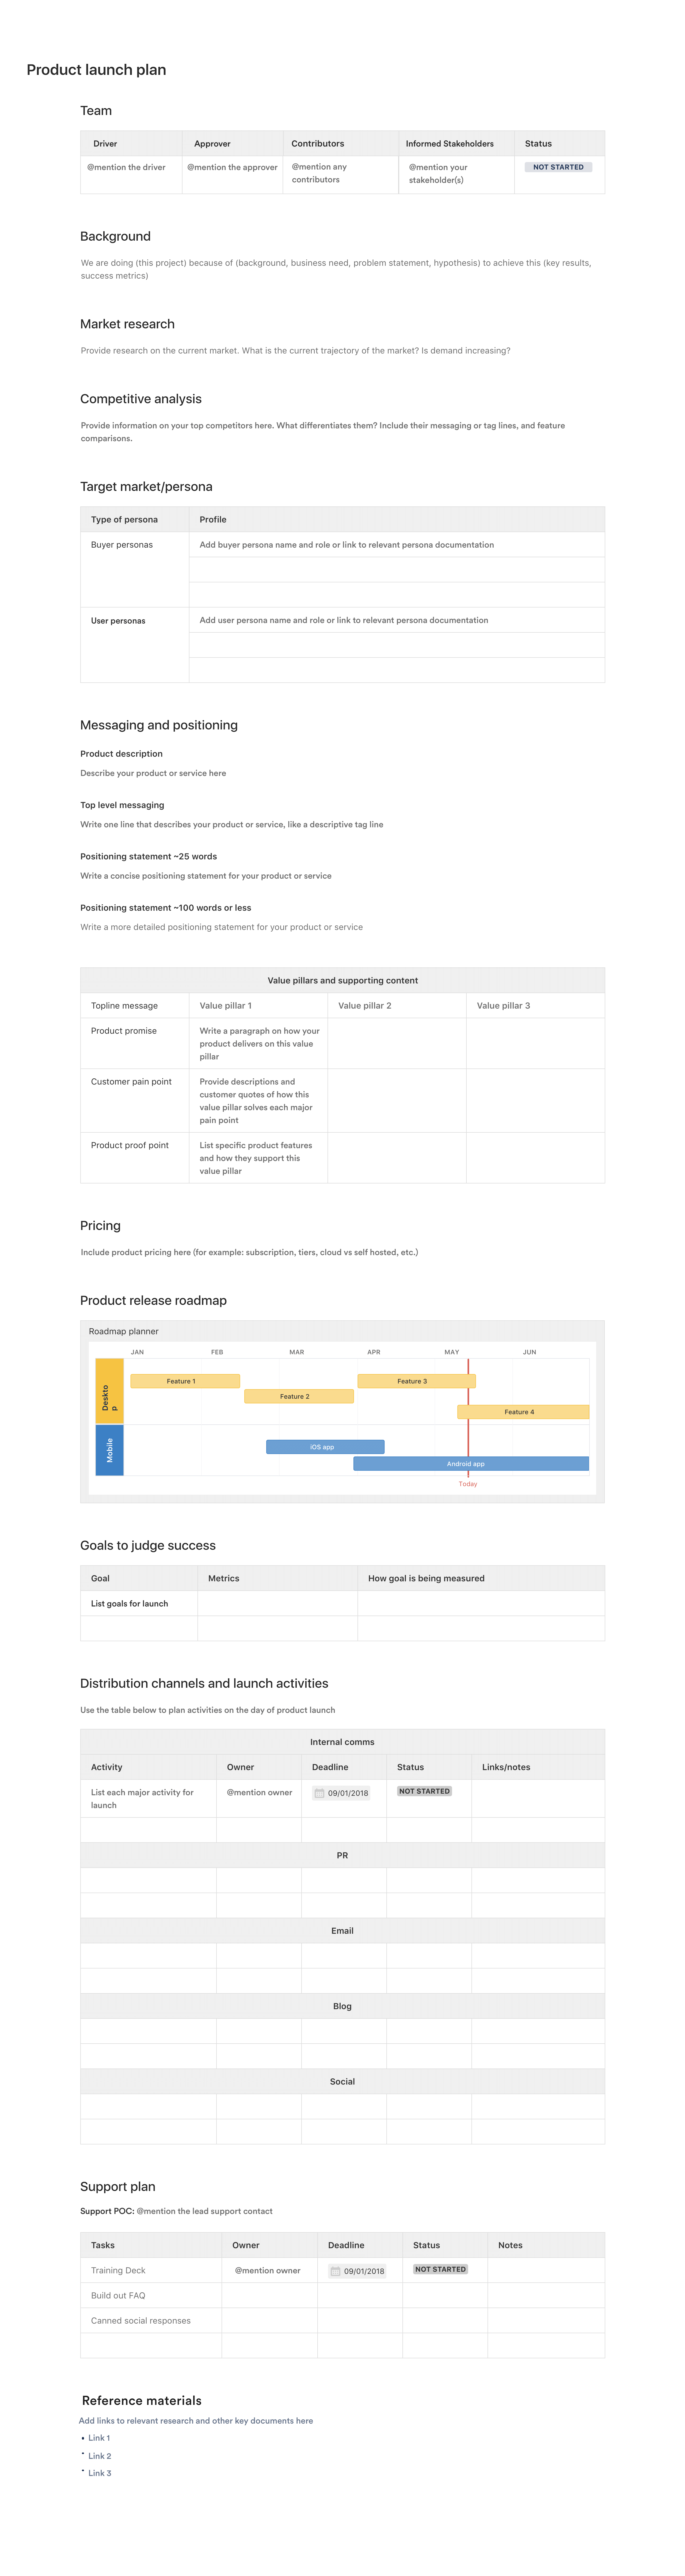 Product launch plan template - Confluence   Atlassian